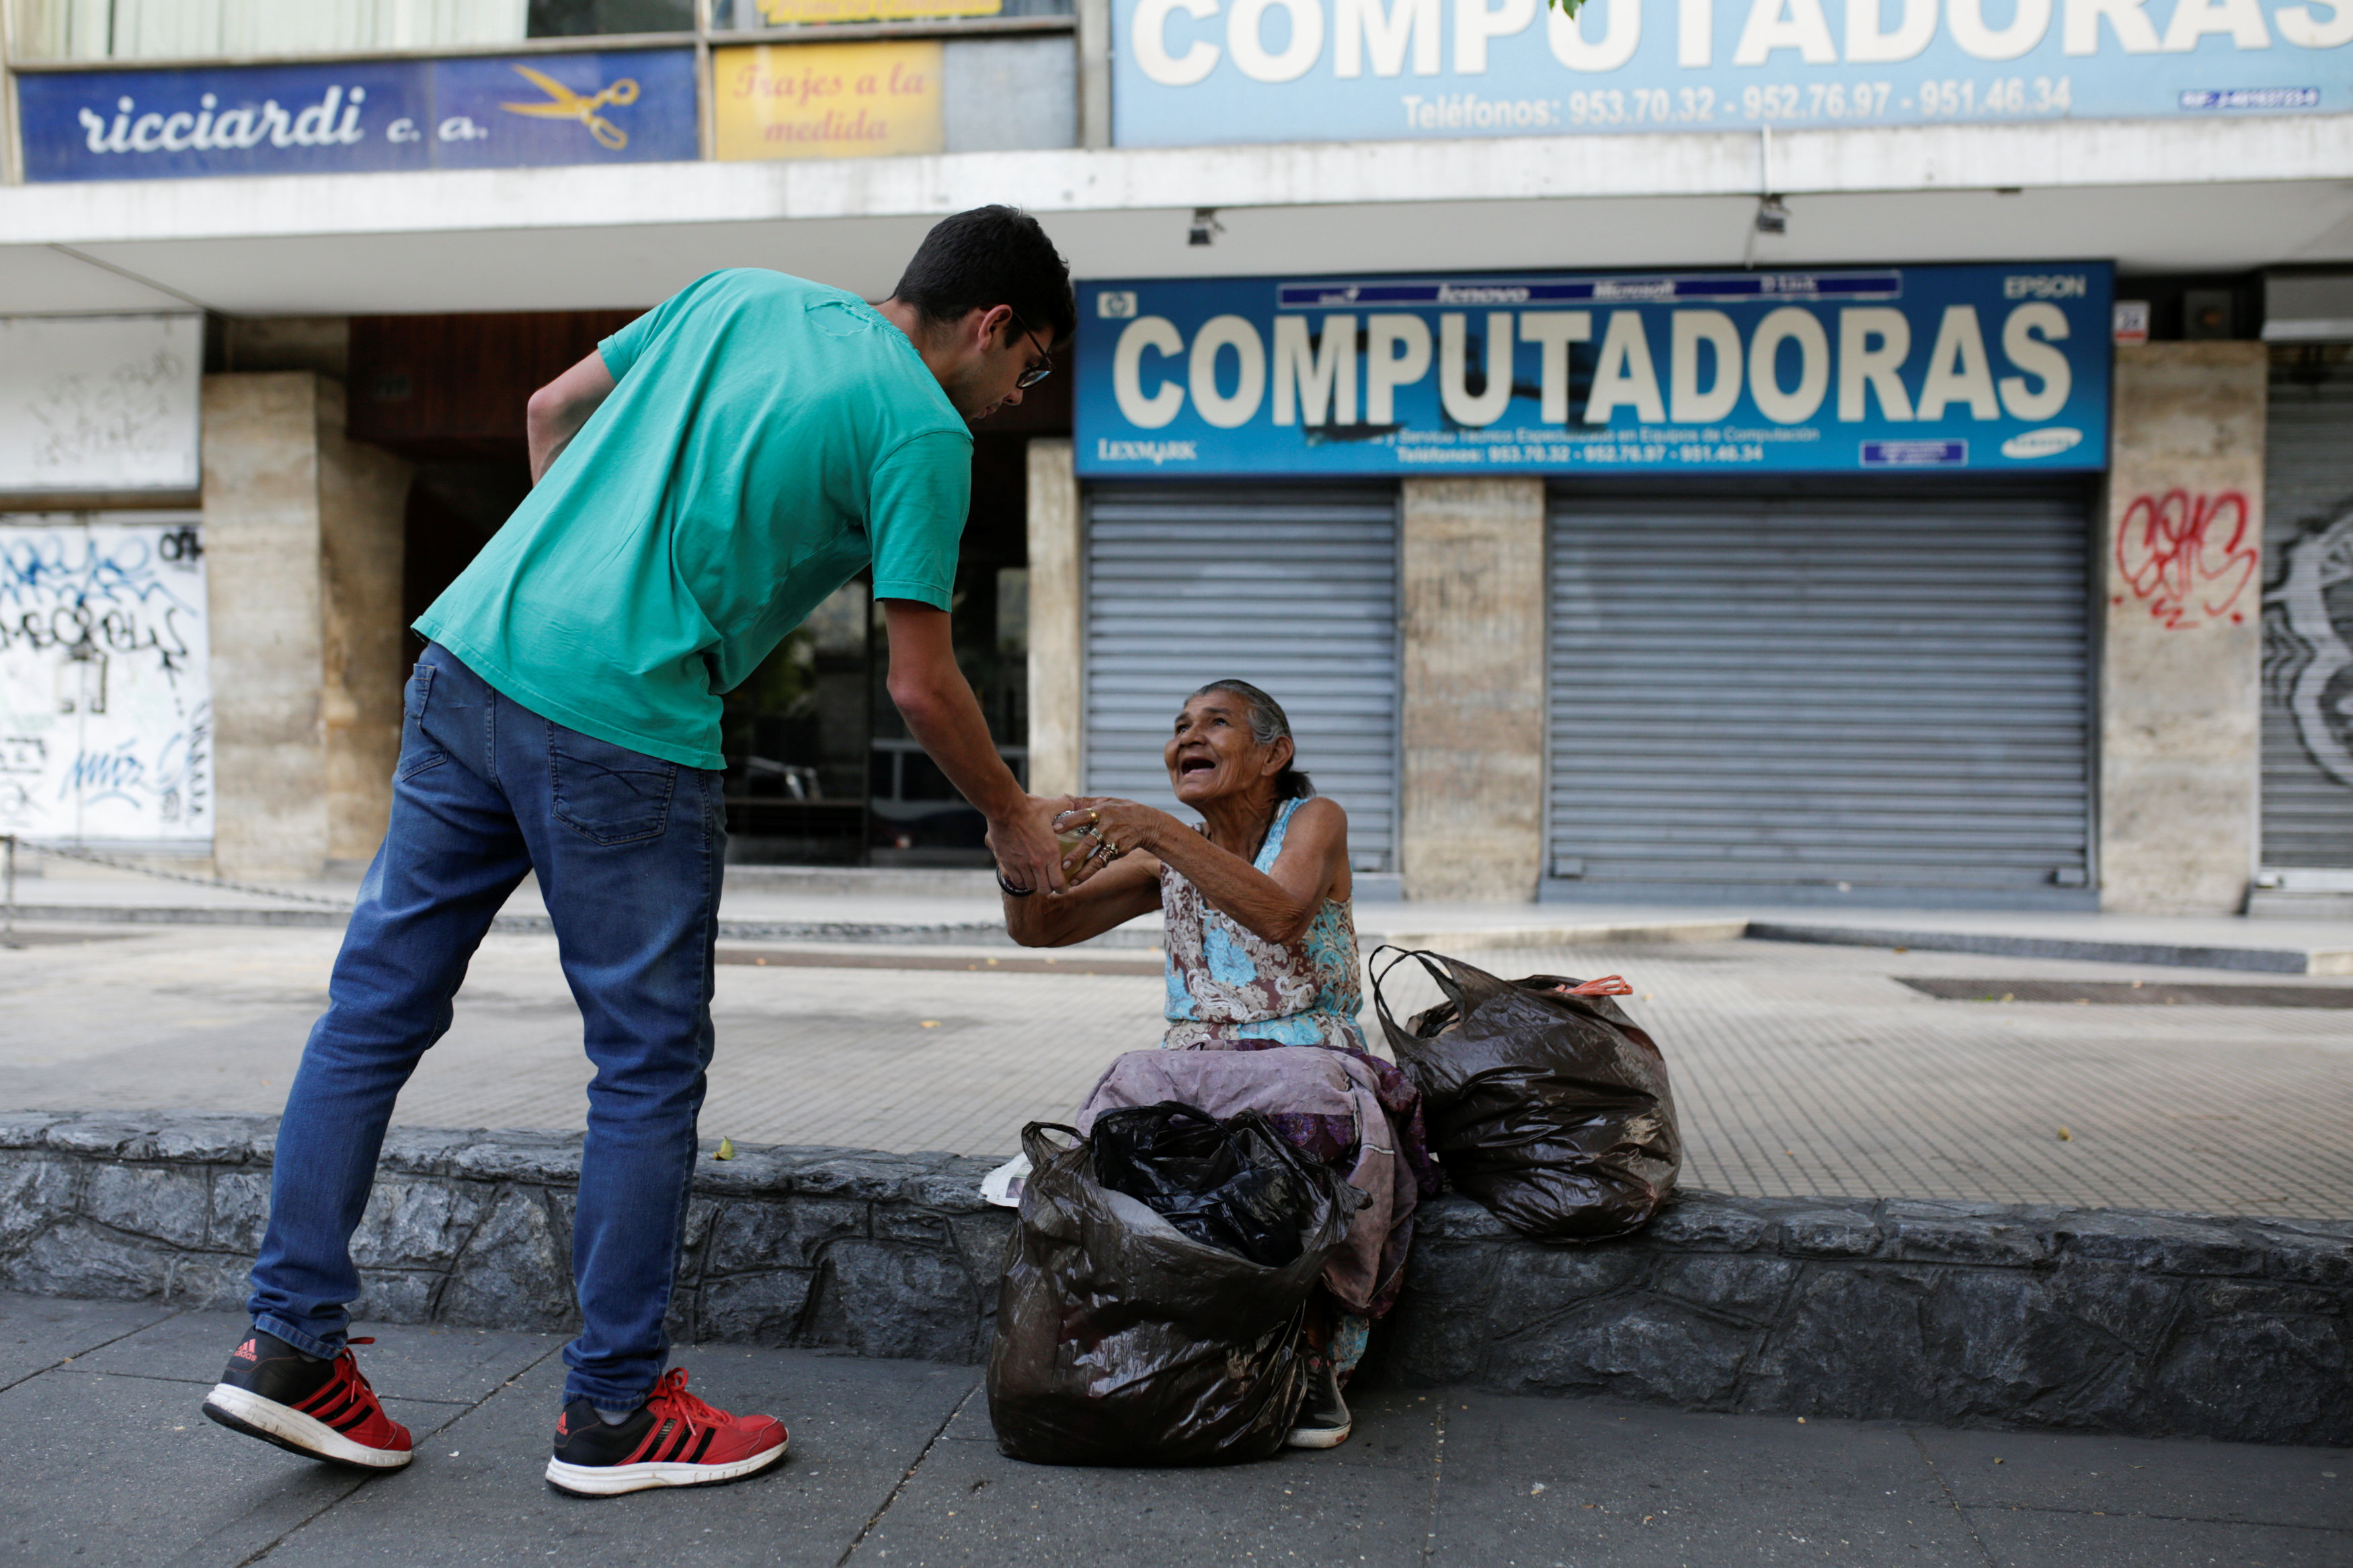 Mariano Marquez (L), a volunteer of Make The Difference (Haz La Diferencia) charity initiative, gives a cup of soup and an arepa to a homeless woman in a street of Caracas, Venezuela March12, 2017. Picture taken March 12, 2017. REUTERS/Marco Bello